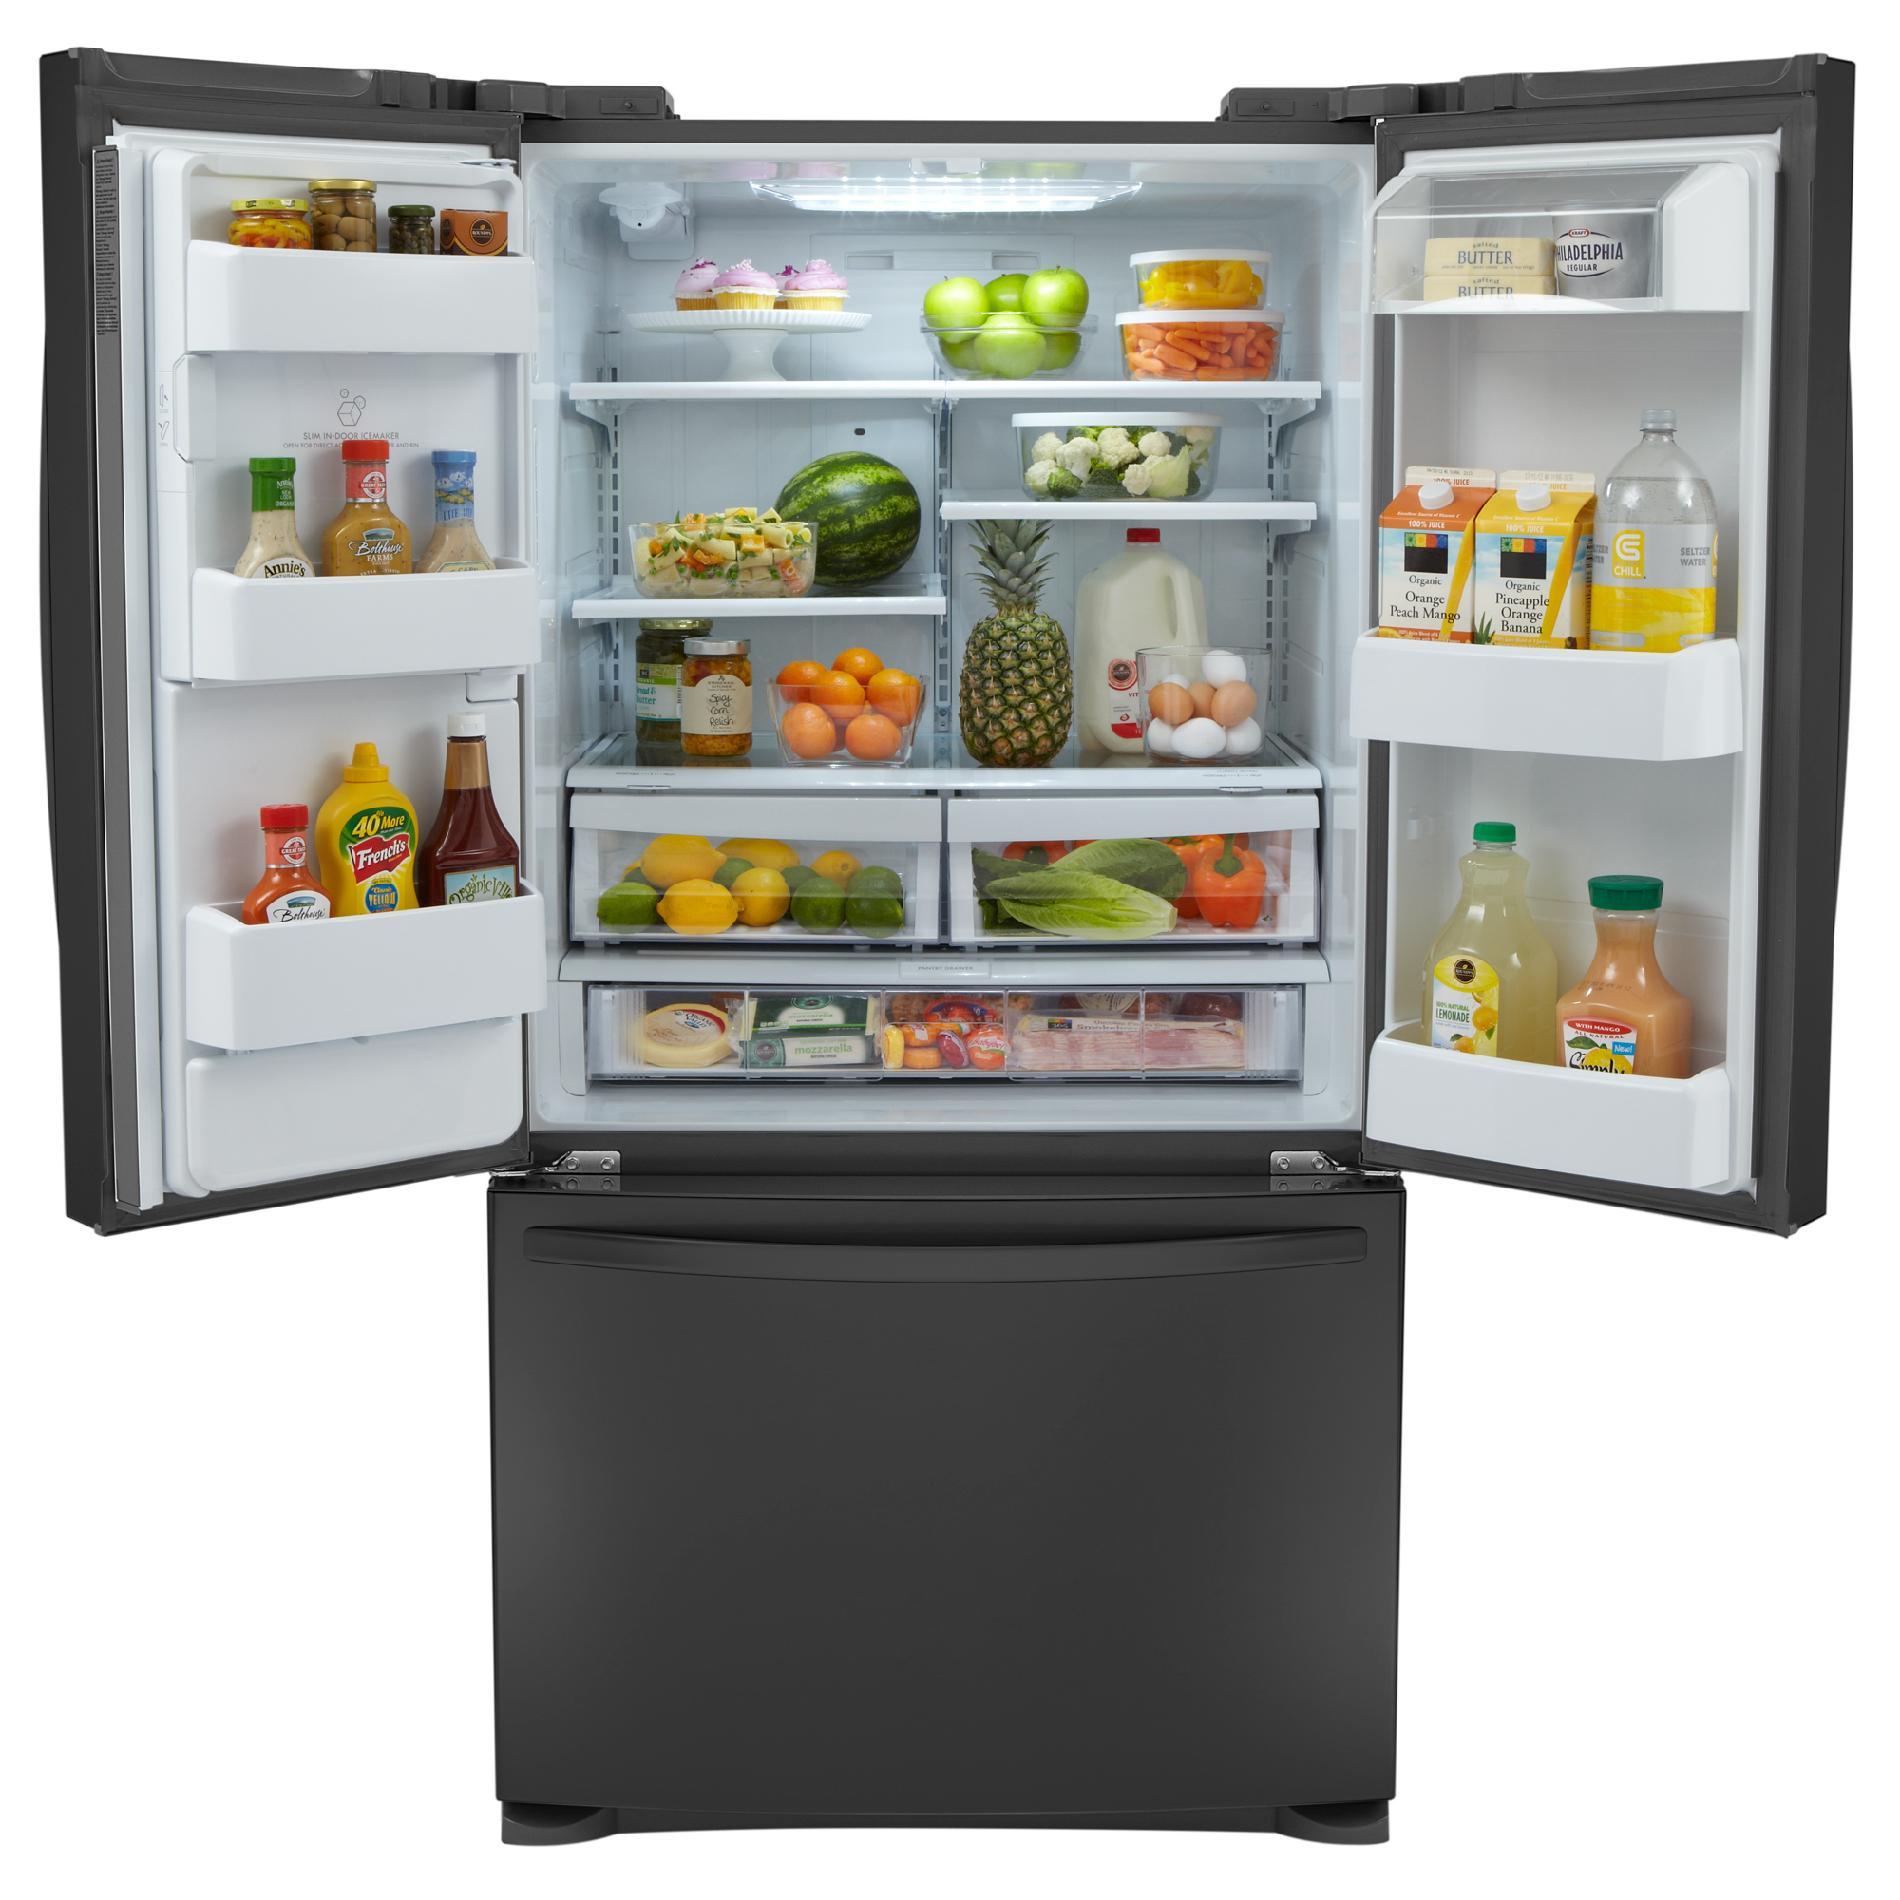 Kenmore 25 cu. ft. French Door Bottom-Freezer Refrigerator- Black